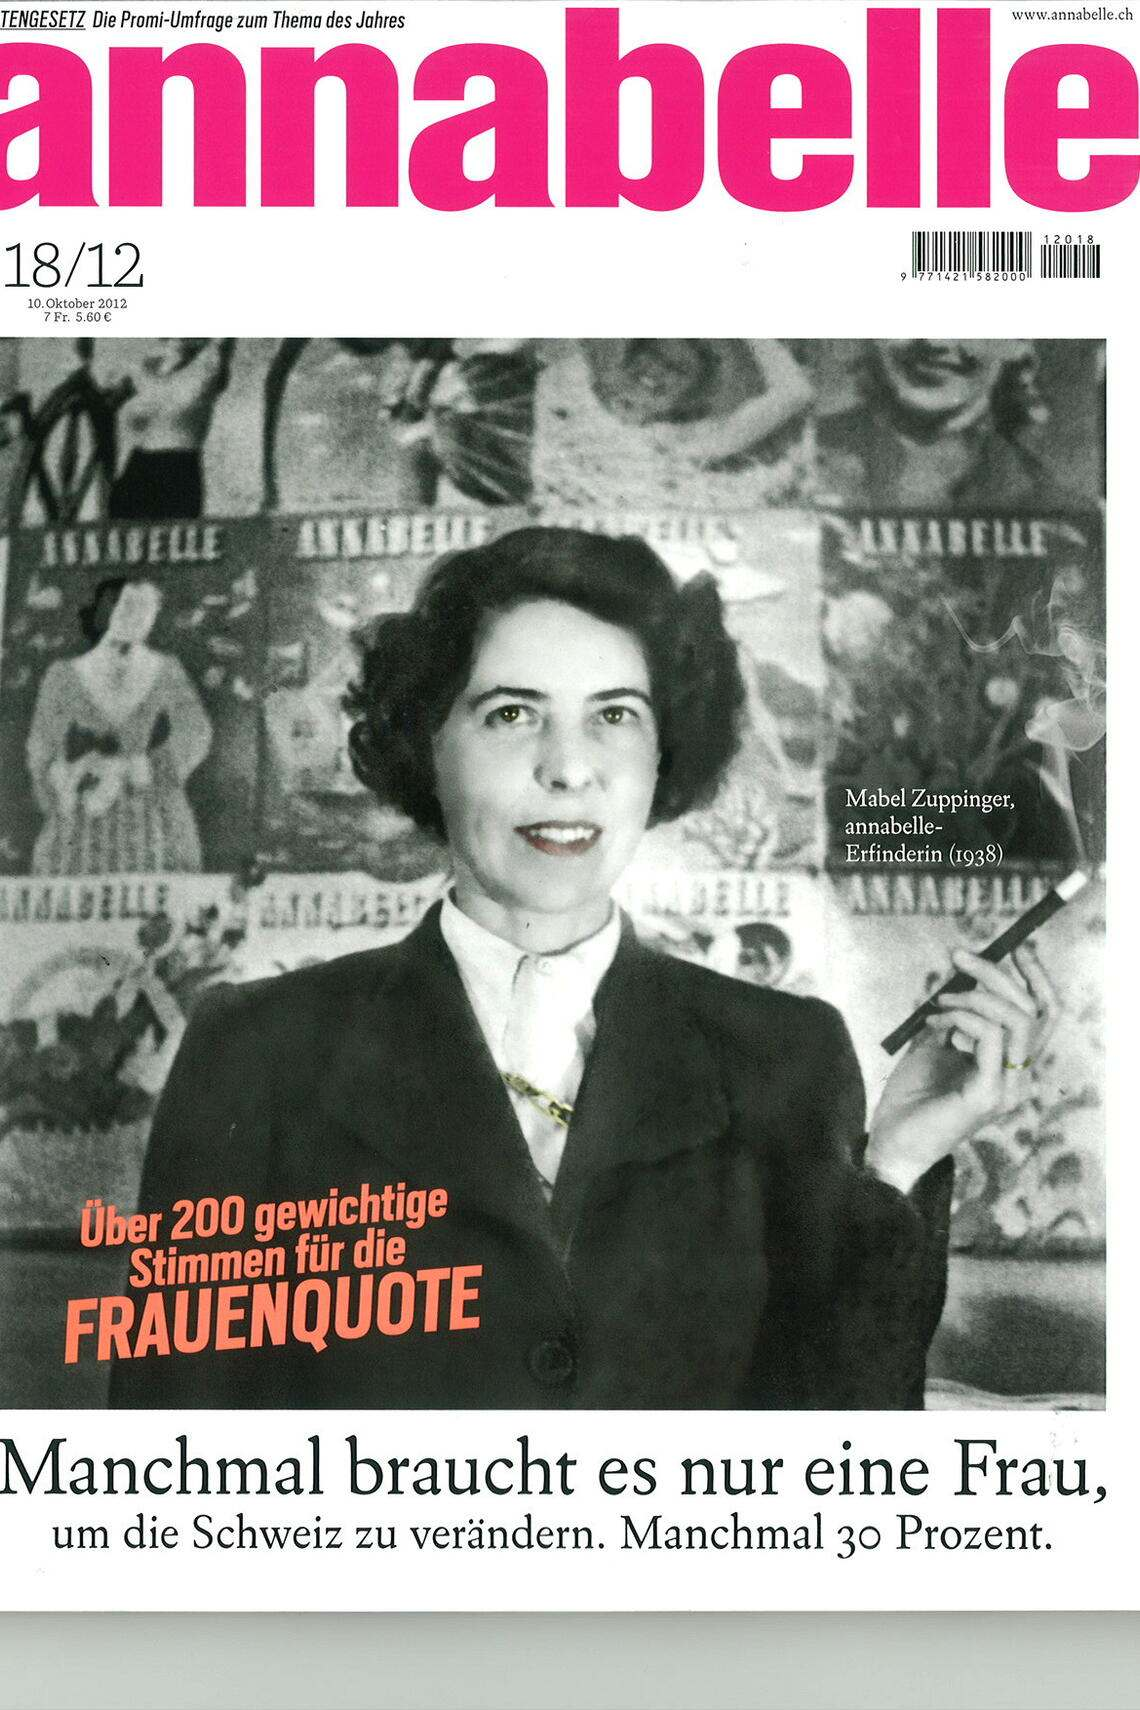 Frauenquote Cover Annabelle